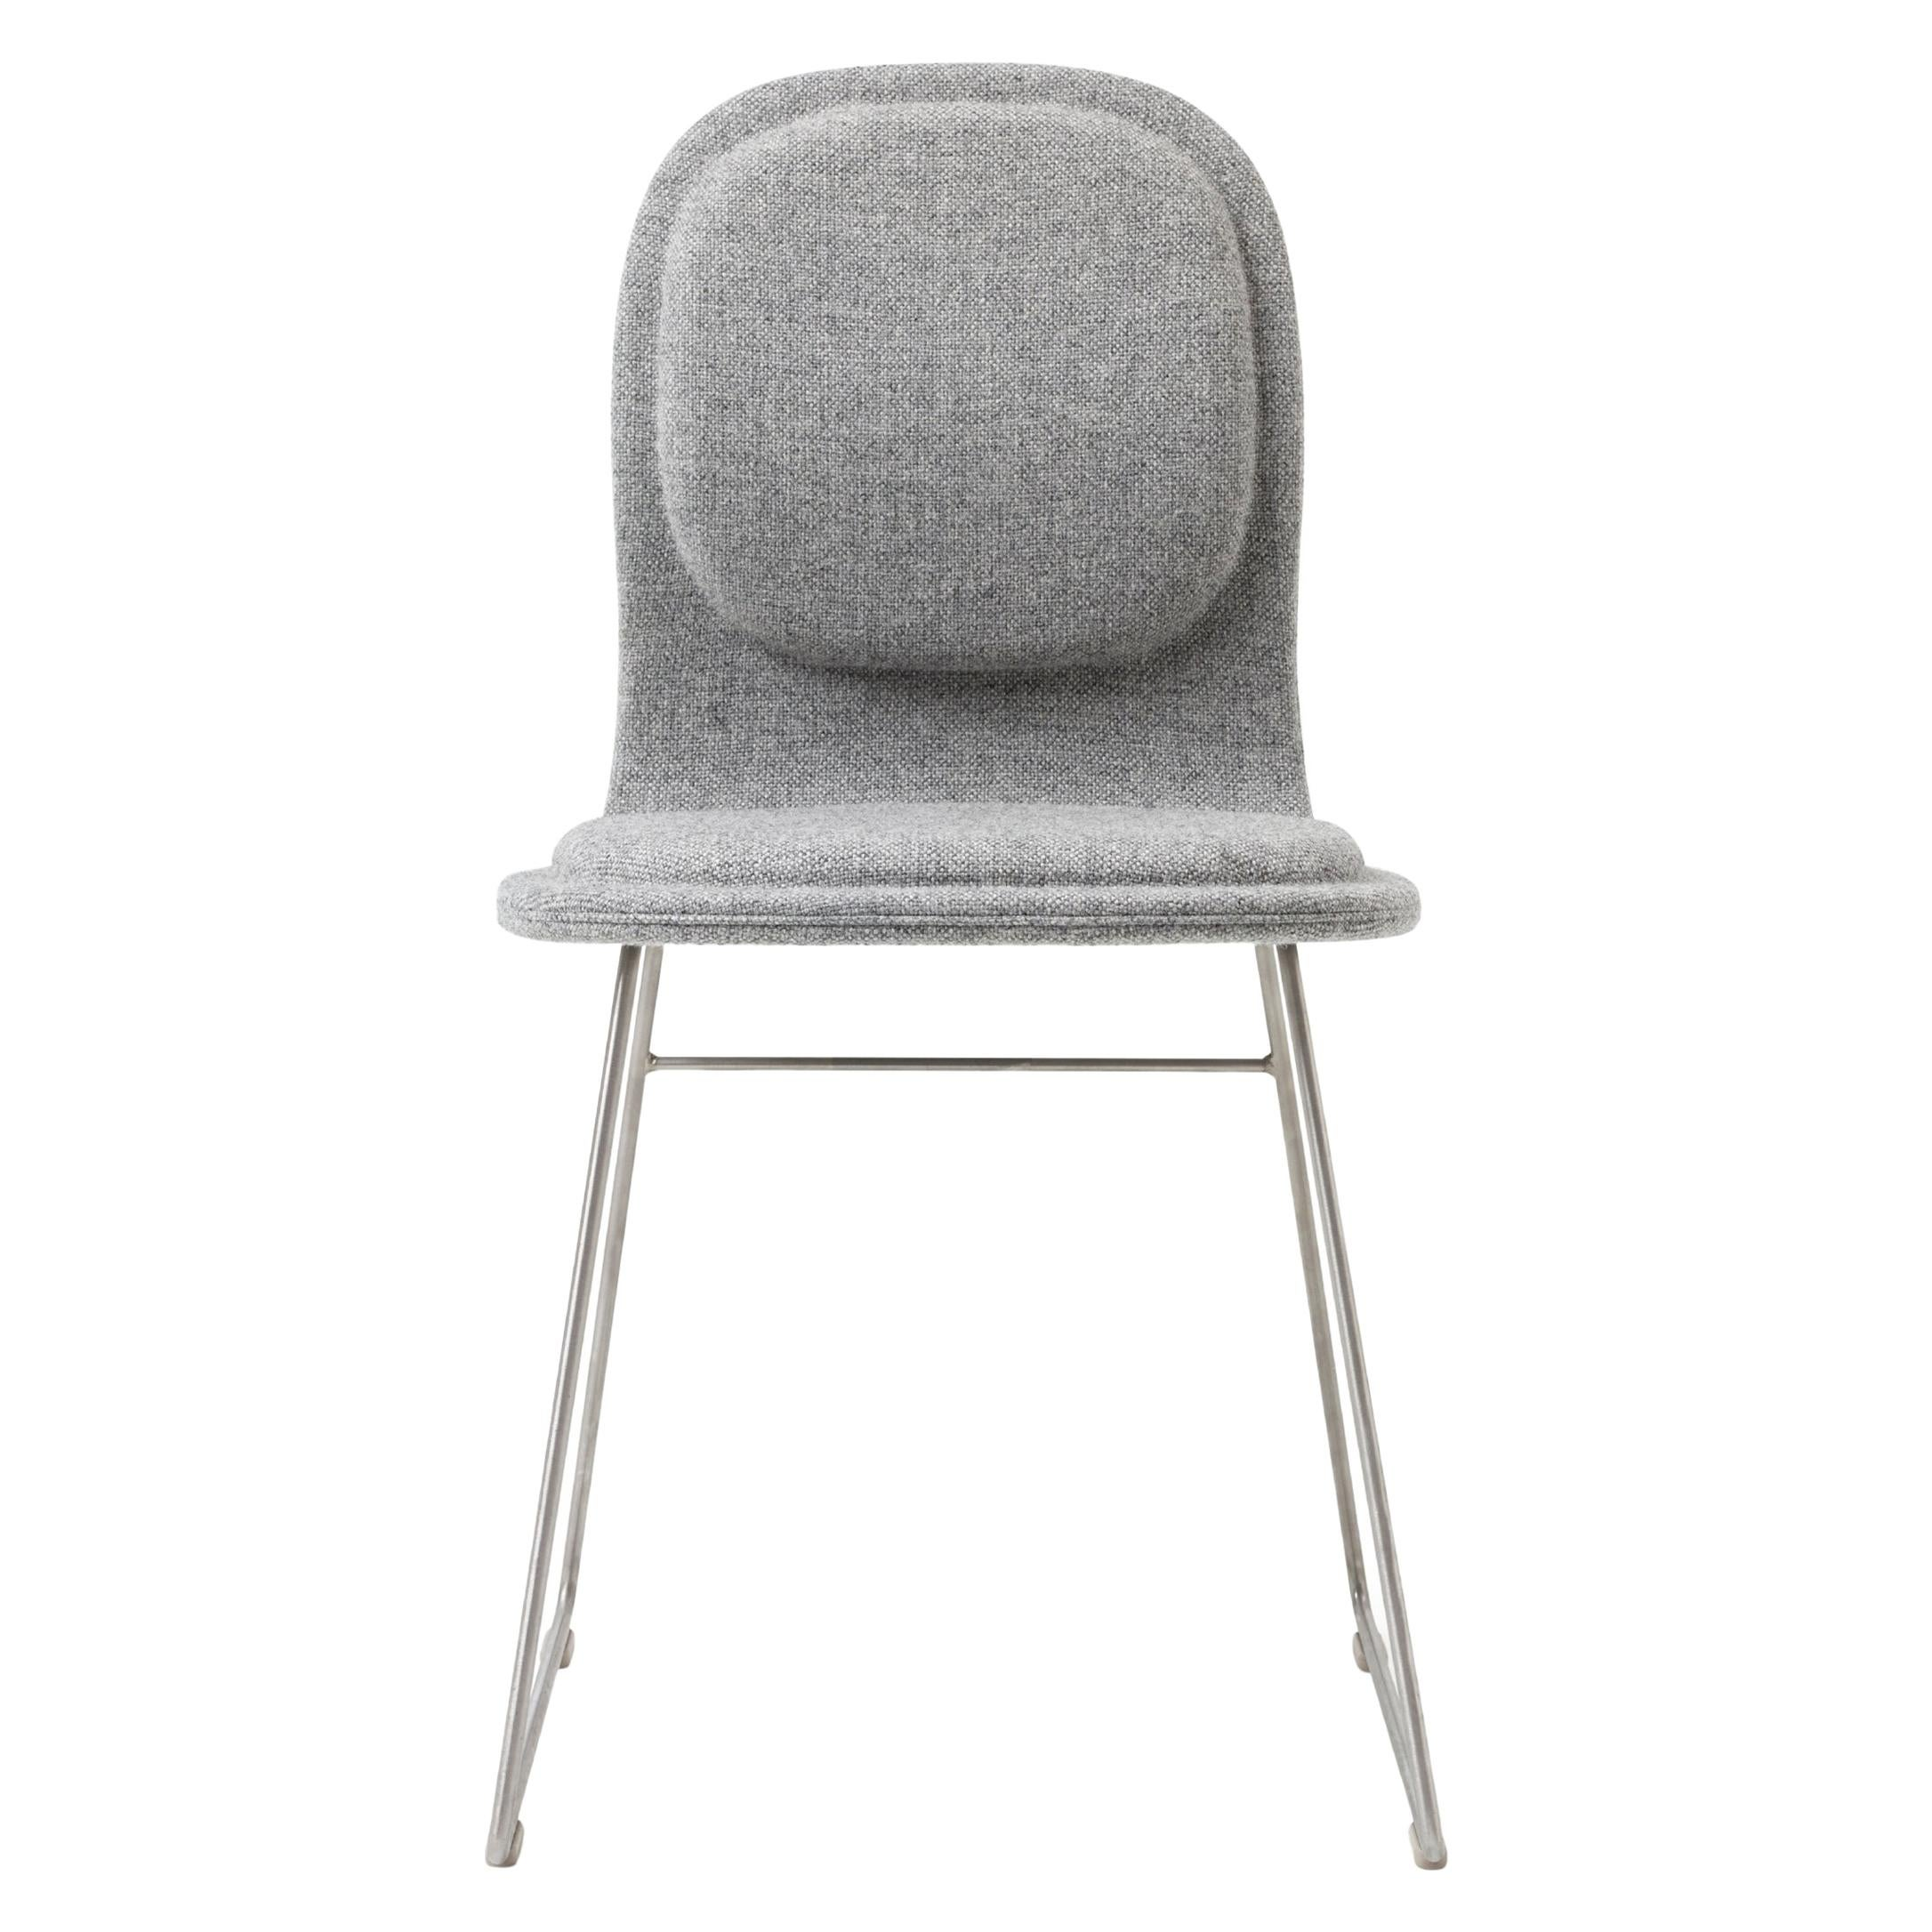 Jasper Morrison Hi Pad Chair in Beech Plywood & Fabric or Leather for Cappellini